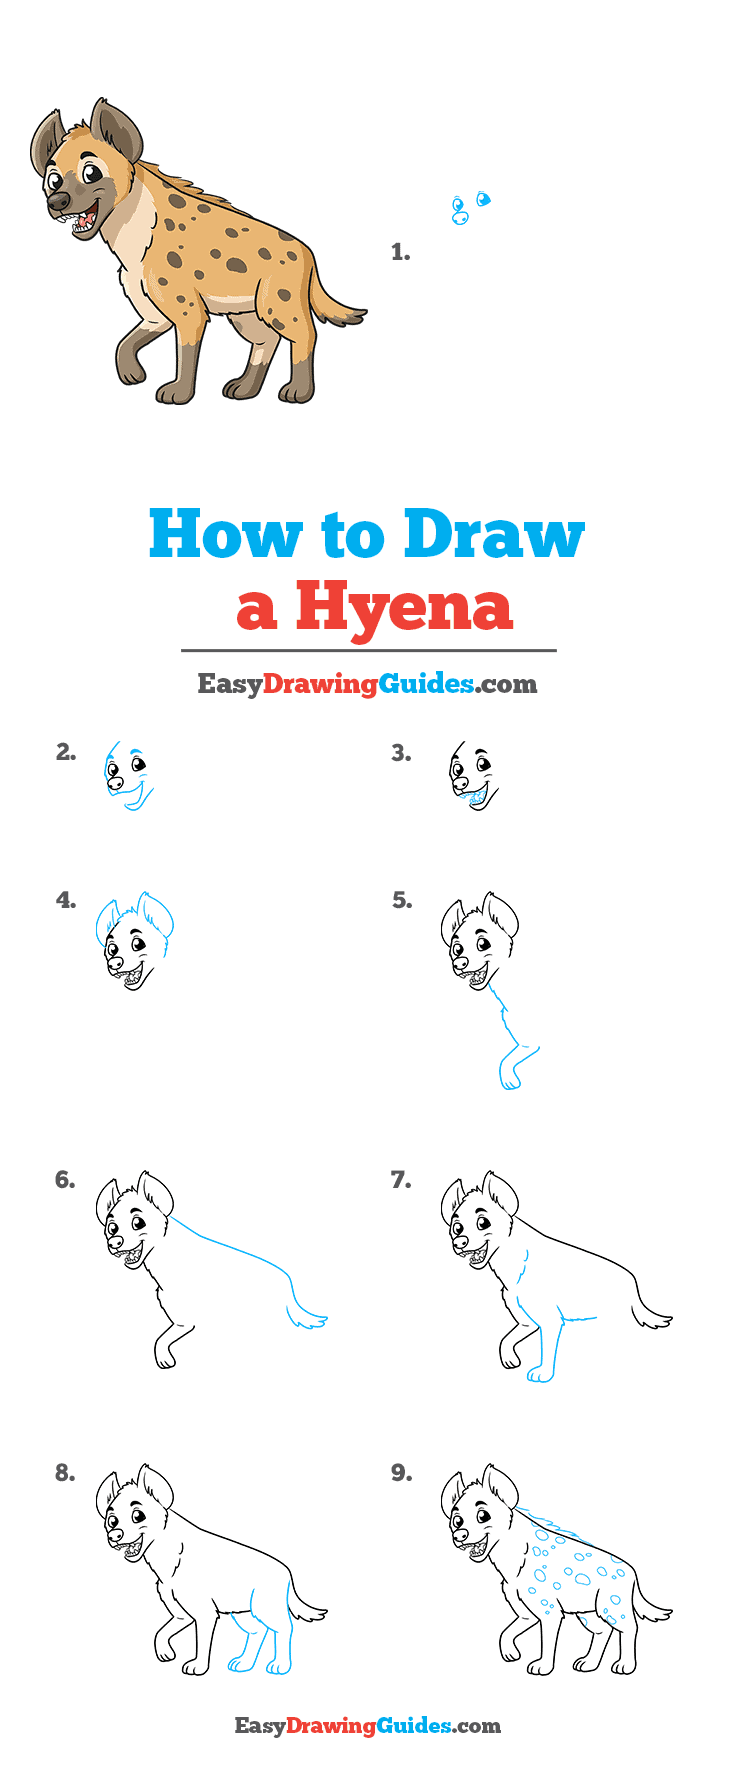 How to draw a Hyena - all drawing steps in one image